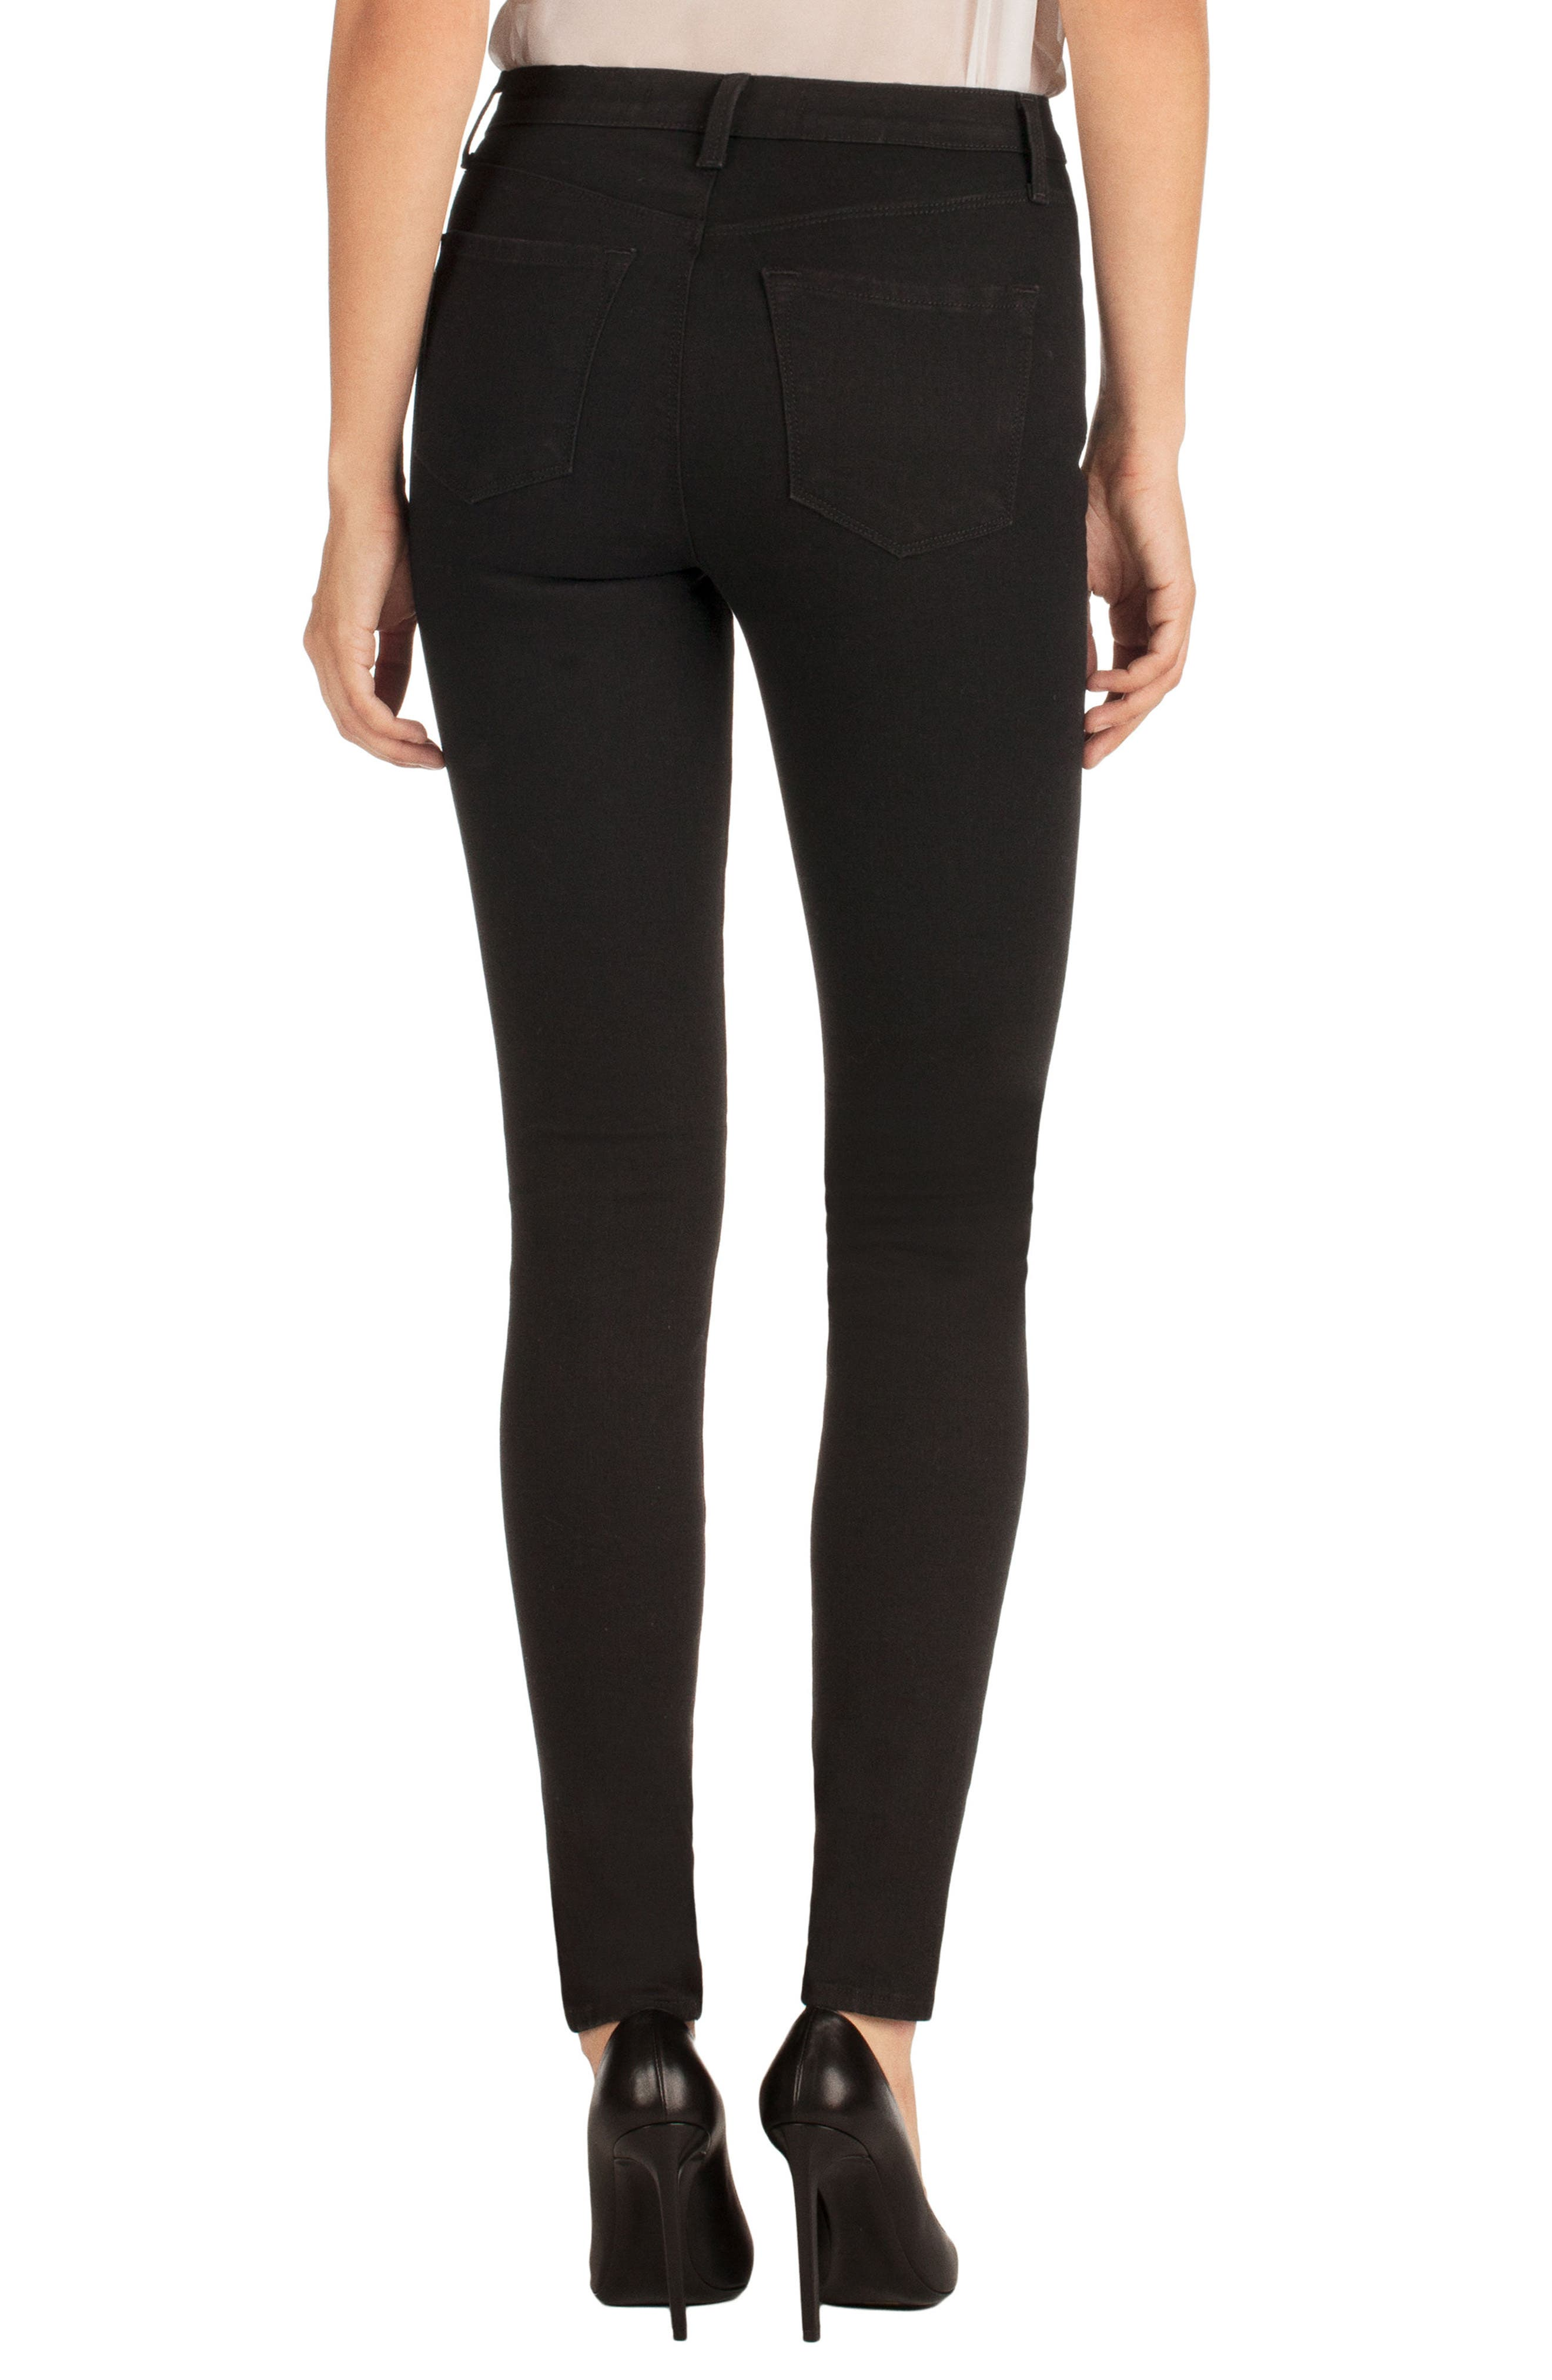 Maria High Waist Skinny Jeans,                             Alternate thumbnail 2, color,                             002